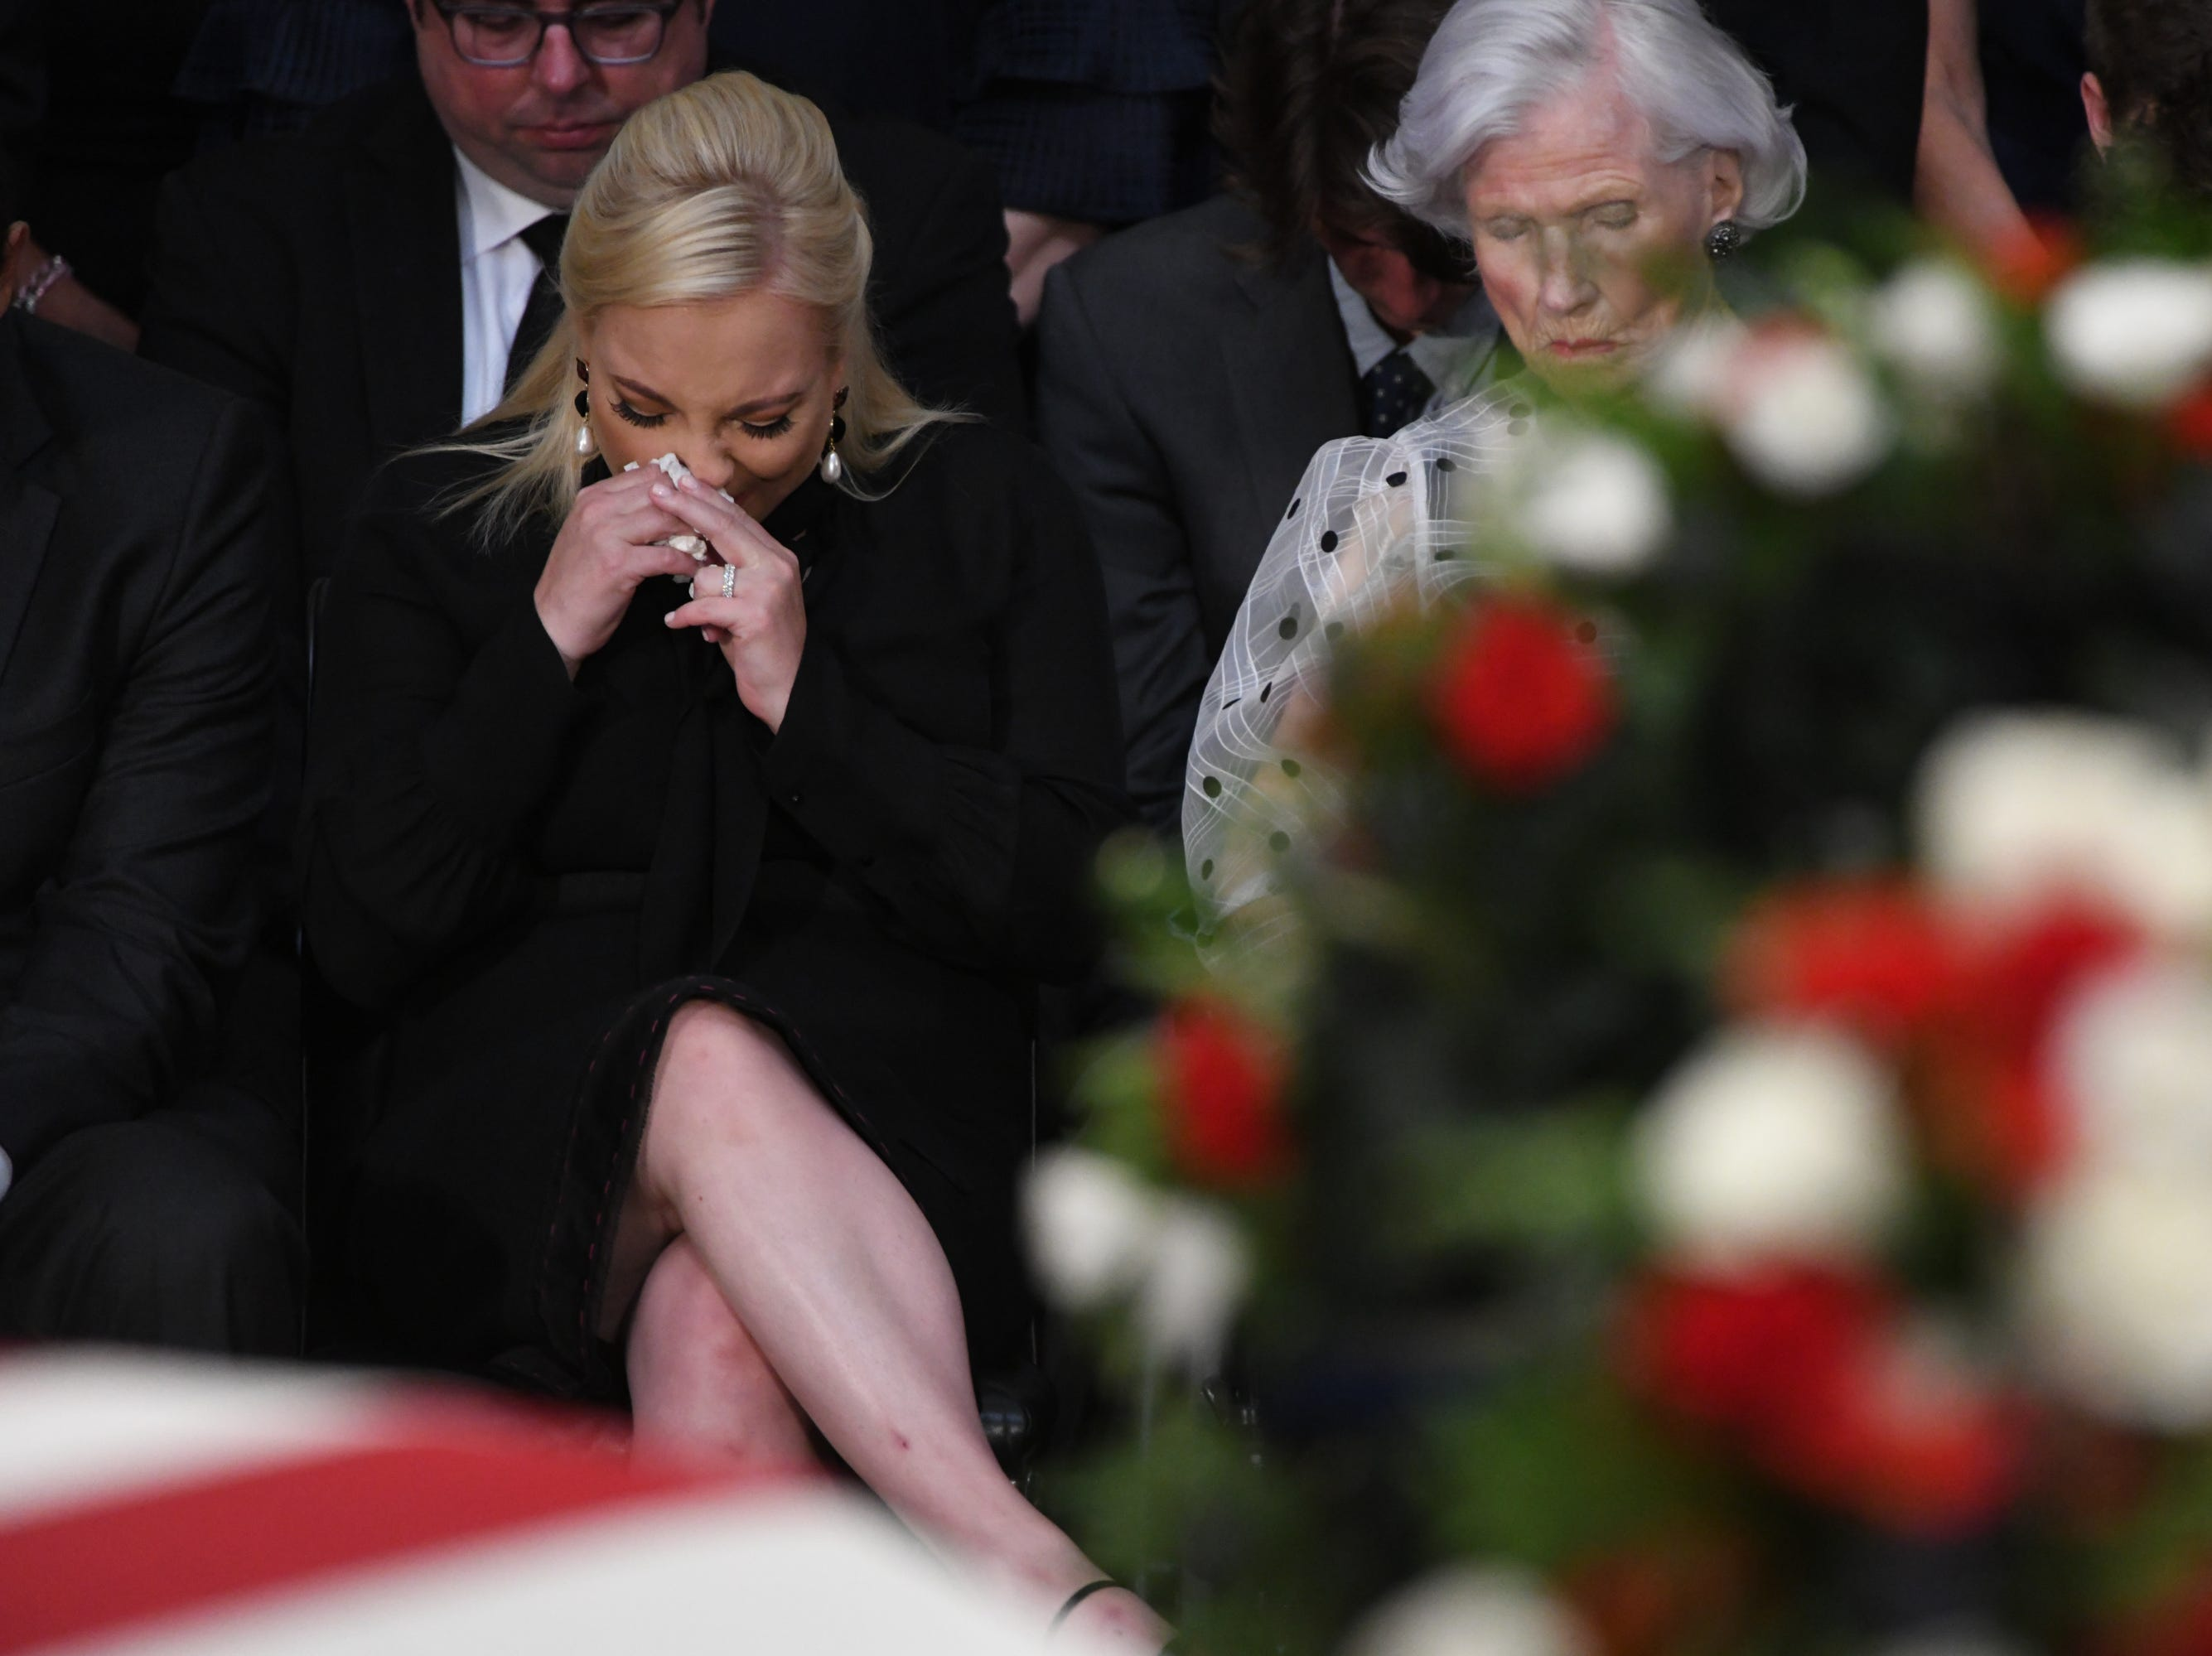 Sen. John McCain's daughter Meghan McCain and his mother, Roberta McCain, attend a memorial at the U.S. Capitol rotunda on Aug. 31, 2018.